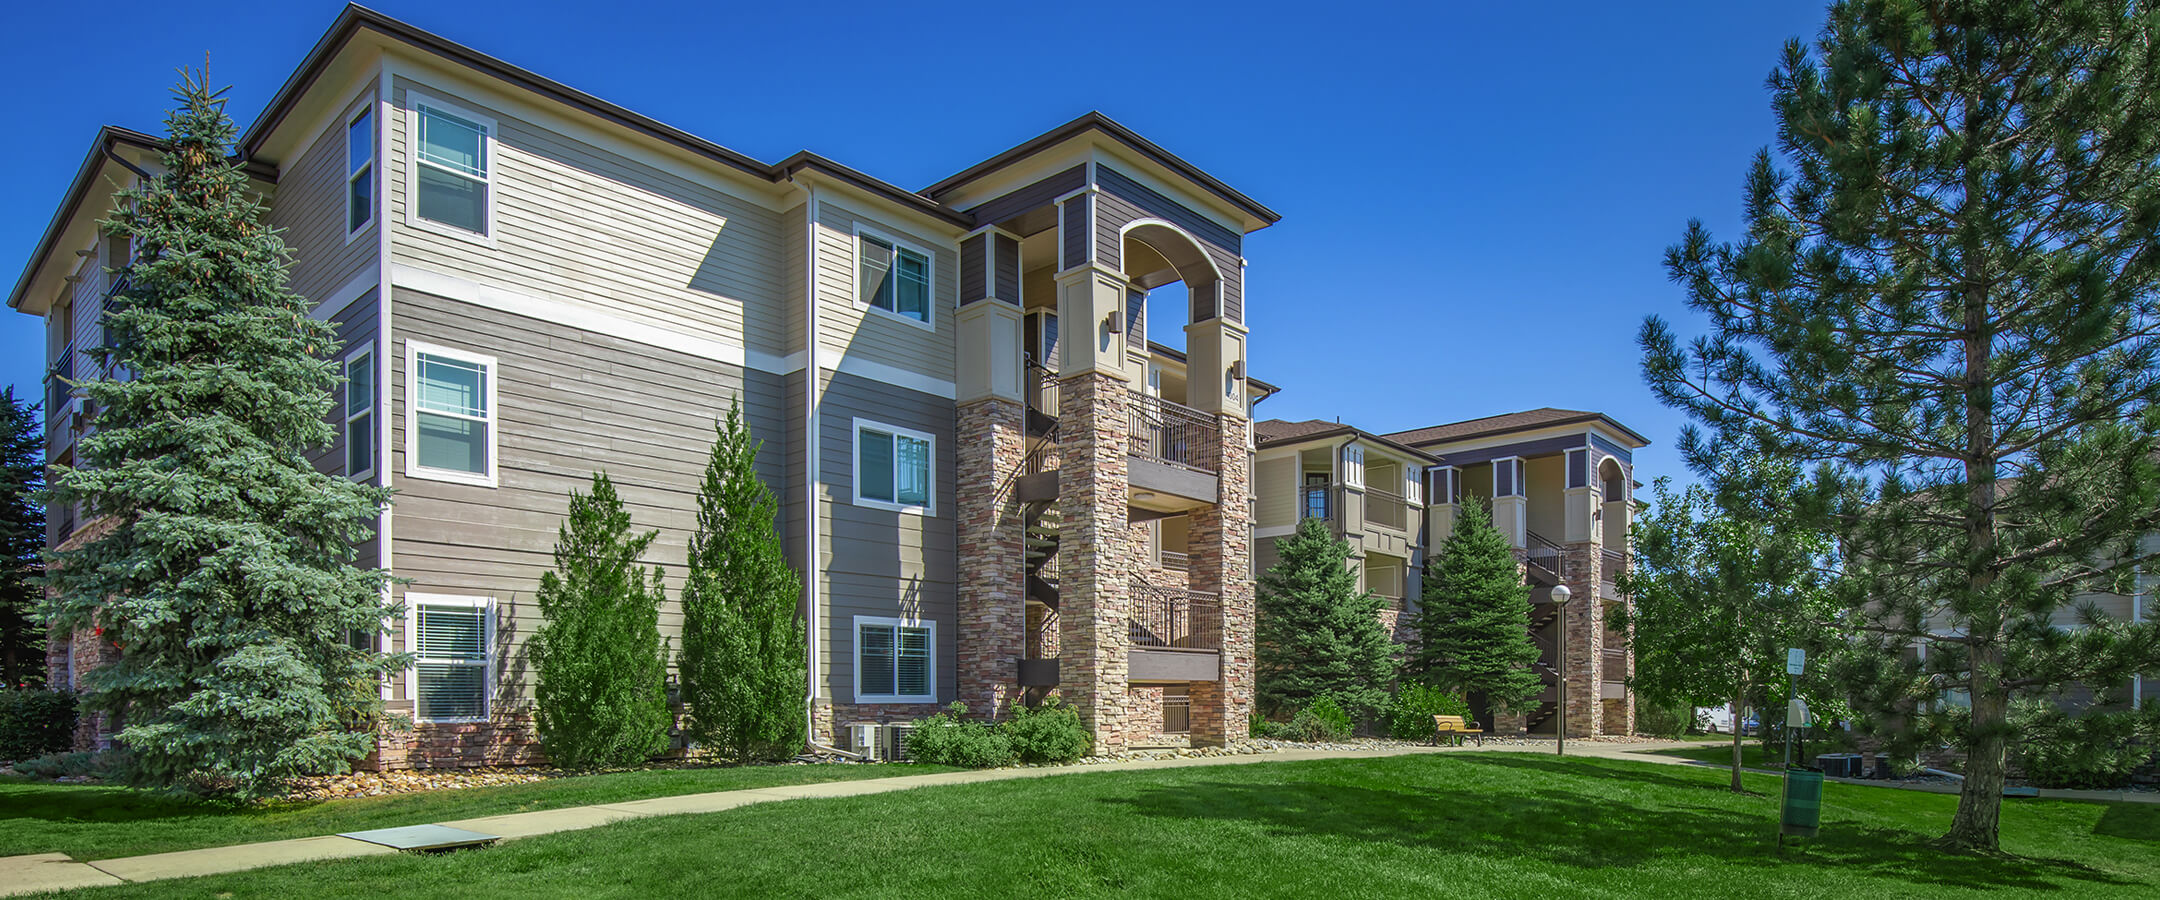 creekside at palmer park apartments in colorado springs co rh gbcreekside com